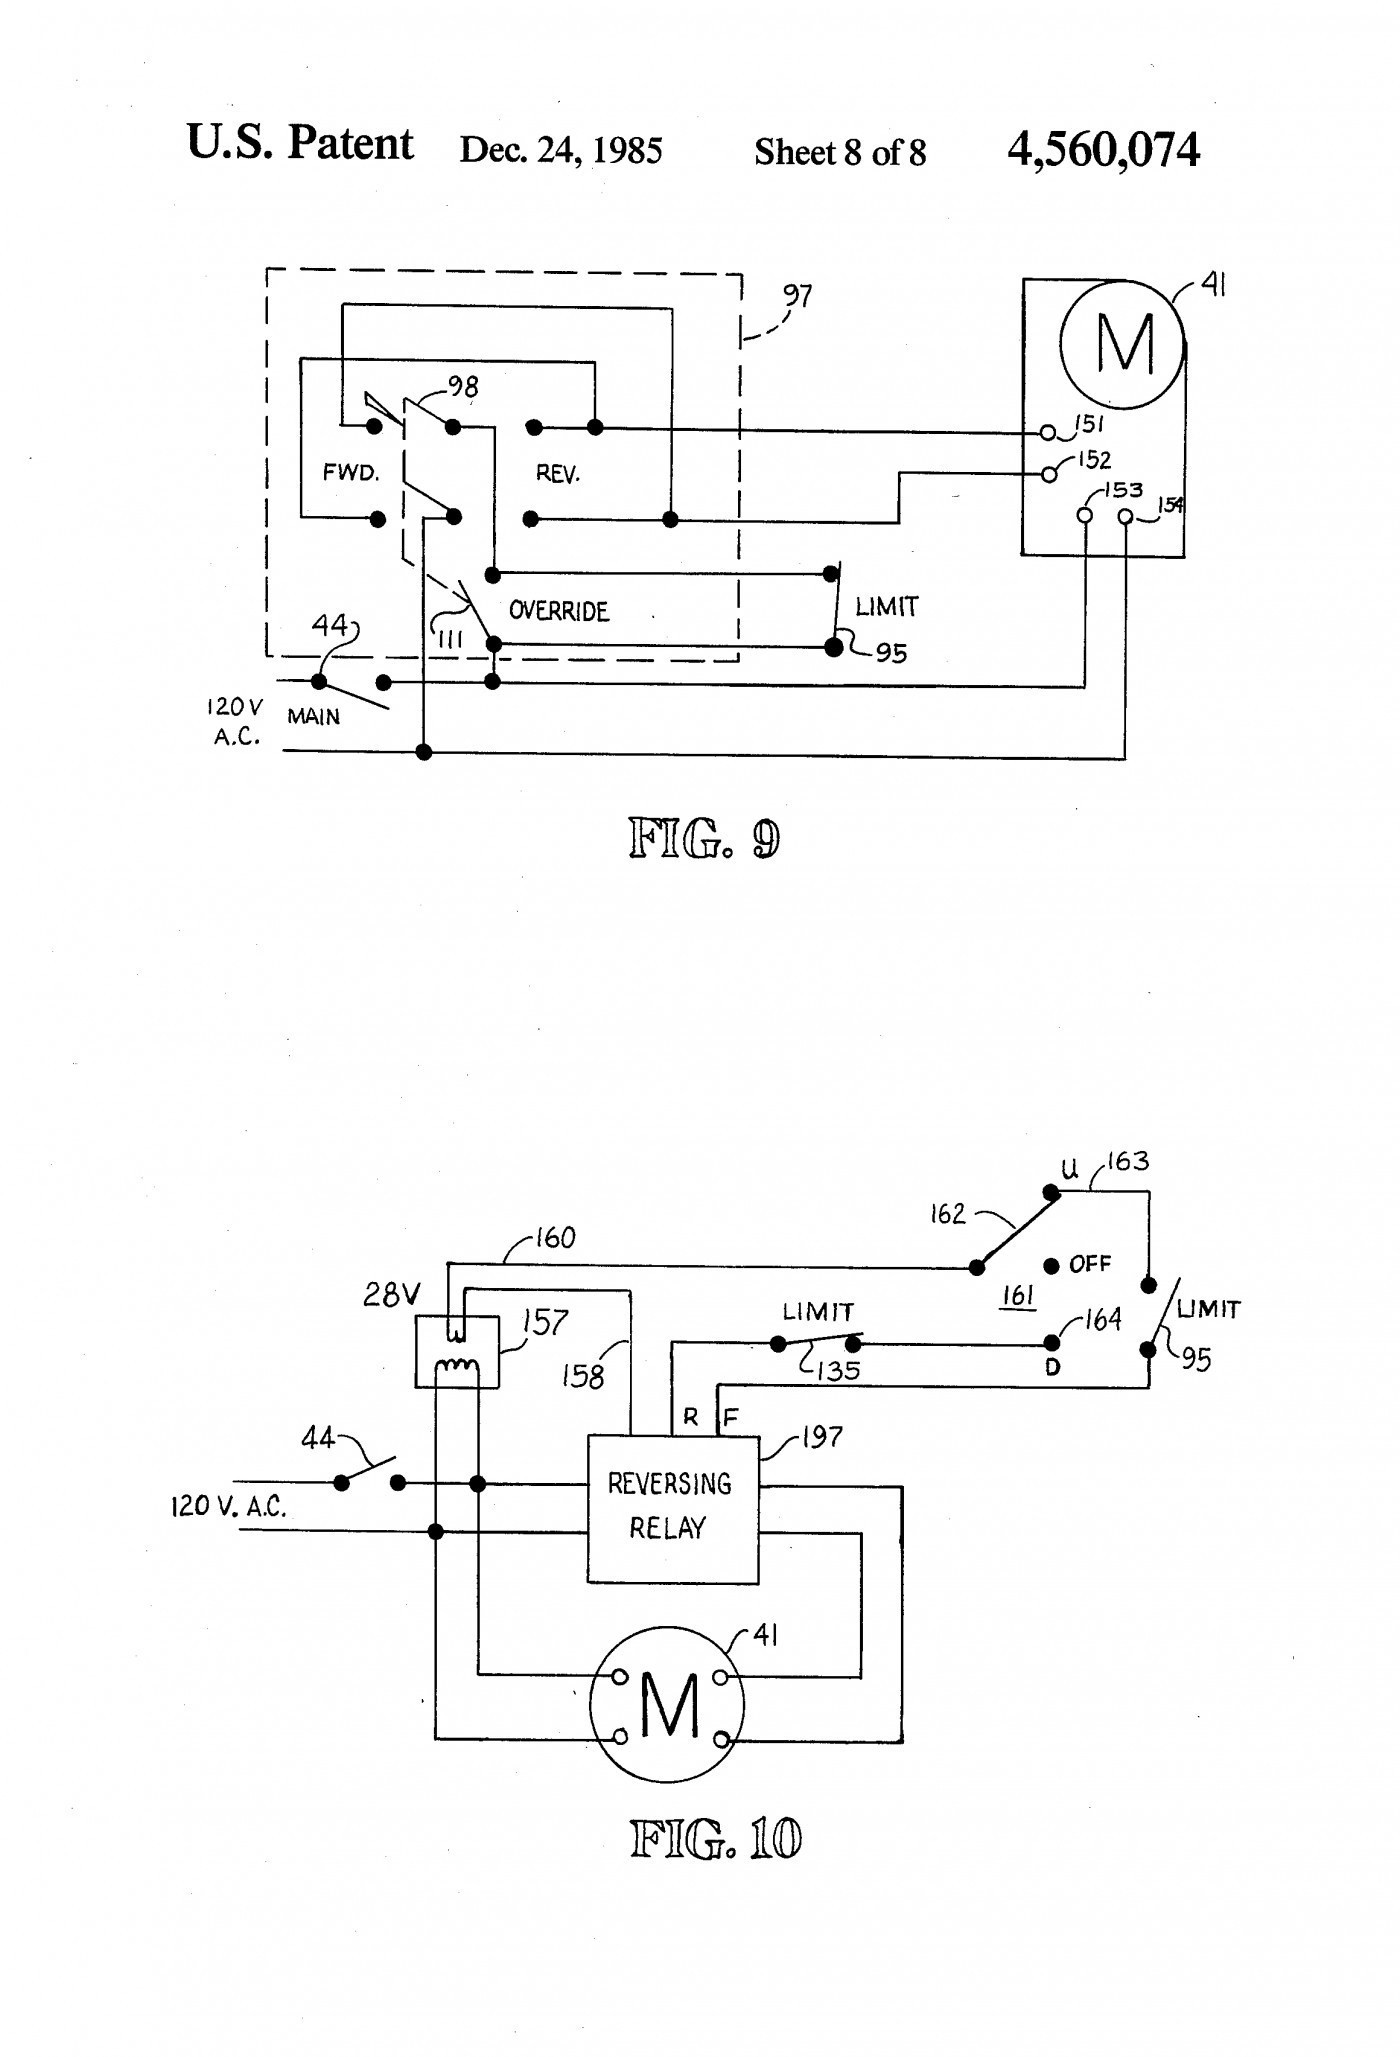 Wiring Diagram Easy Simple Routing Starter Relay Wiring Diagram Simple Wiring Schematics